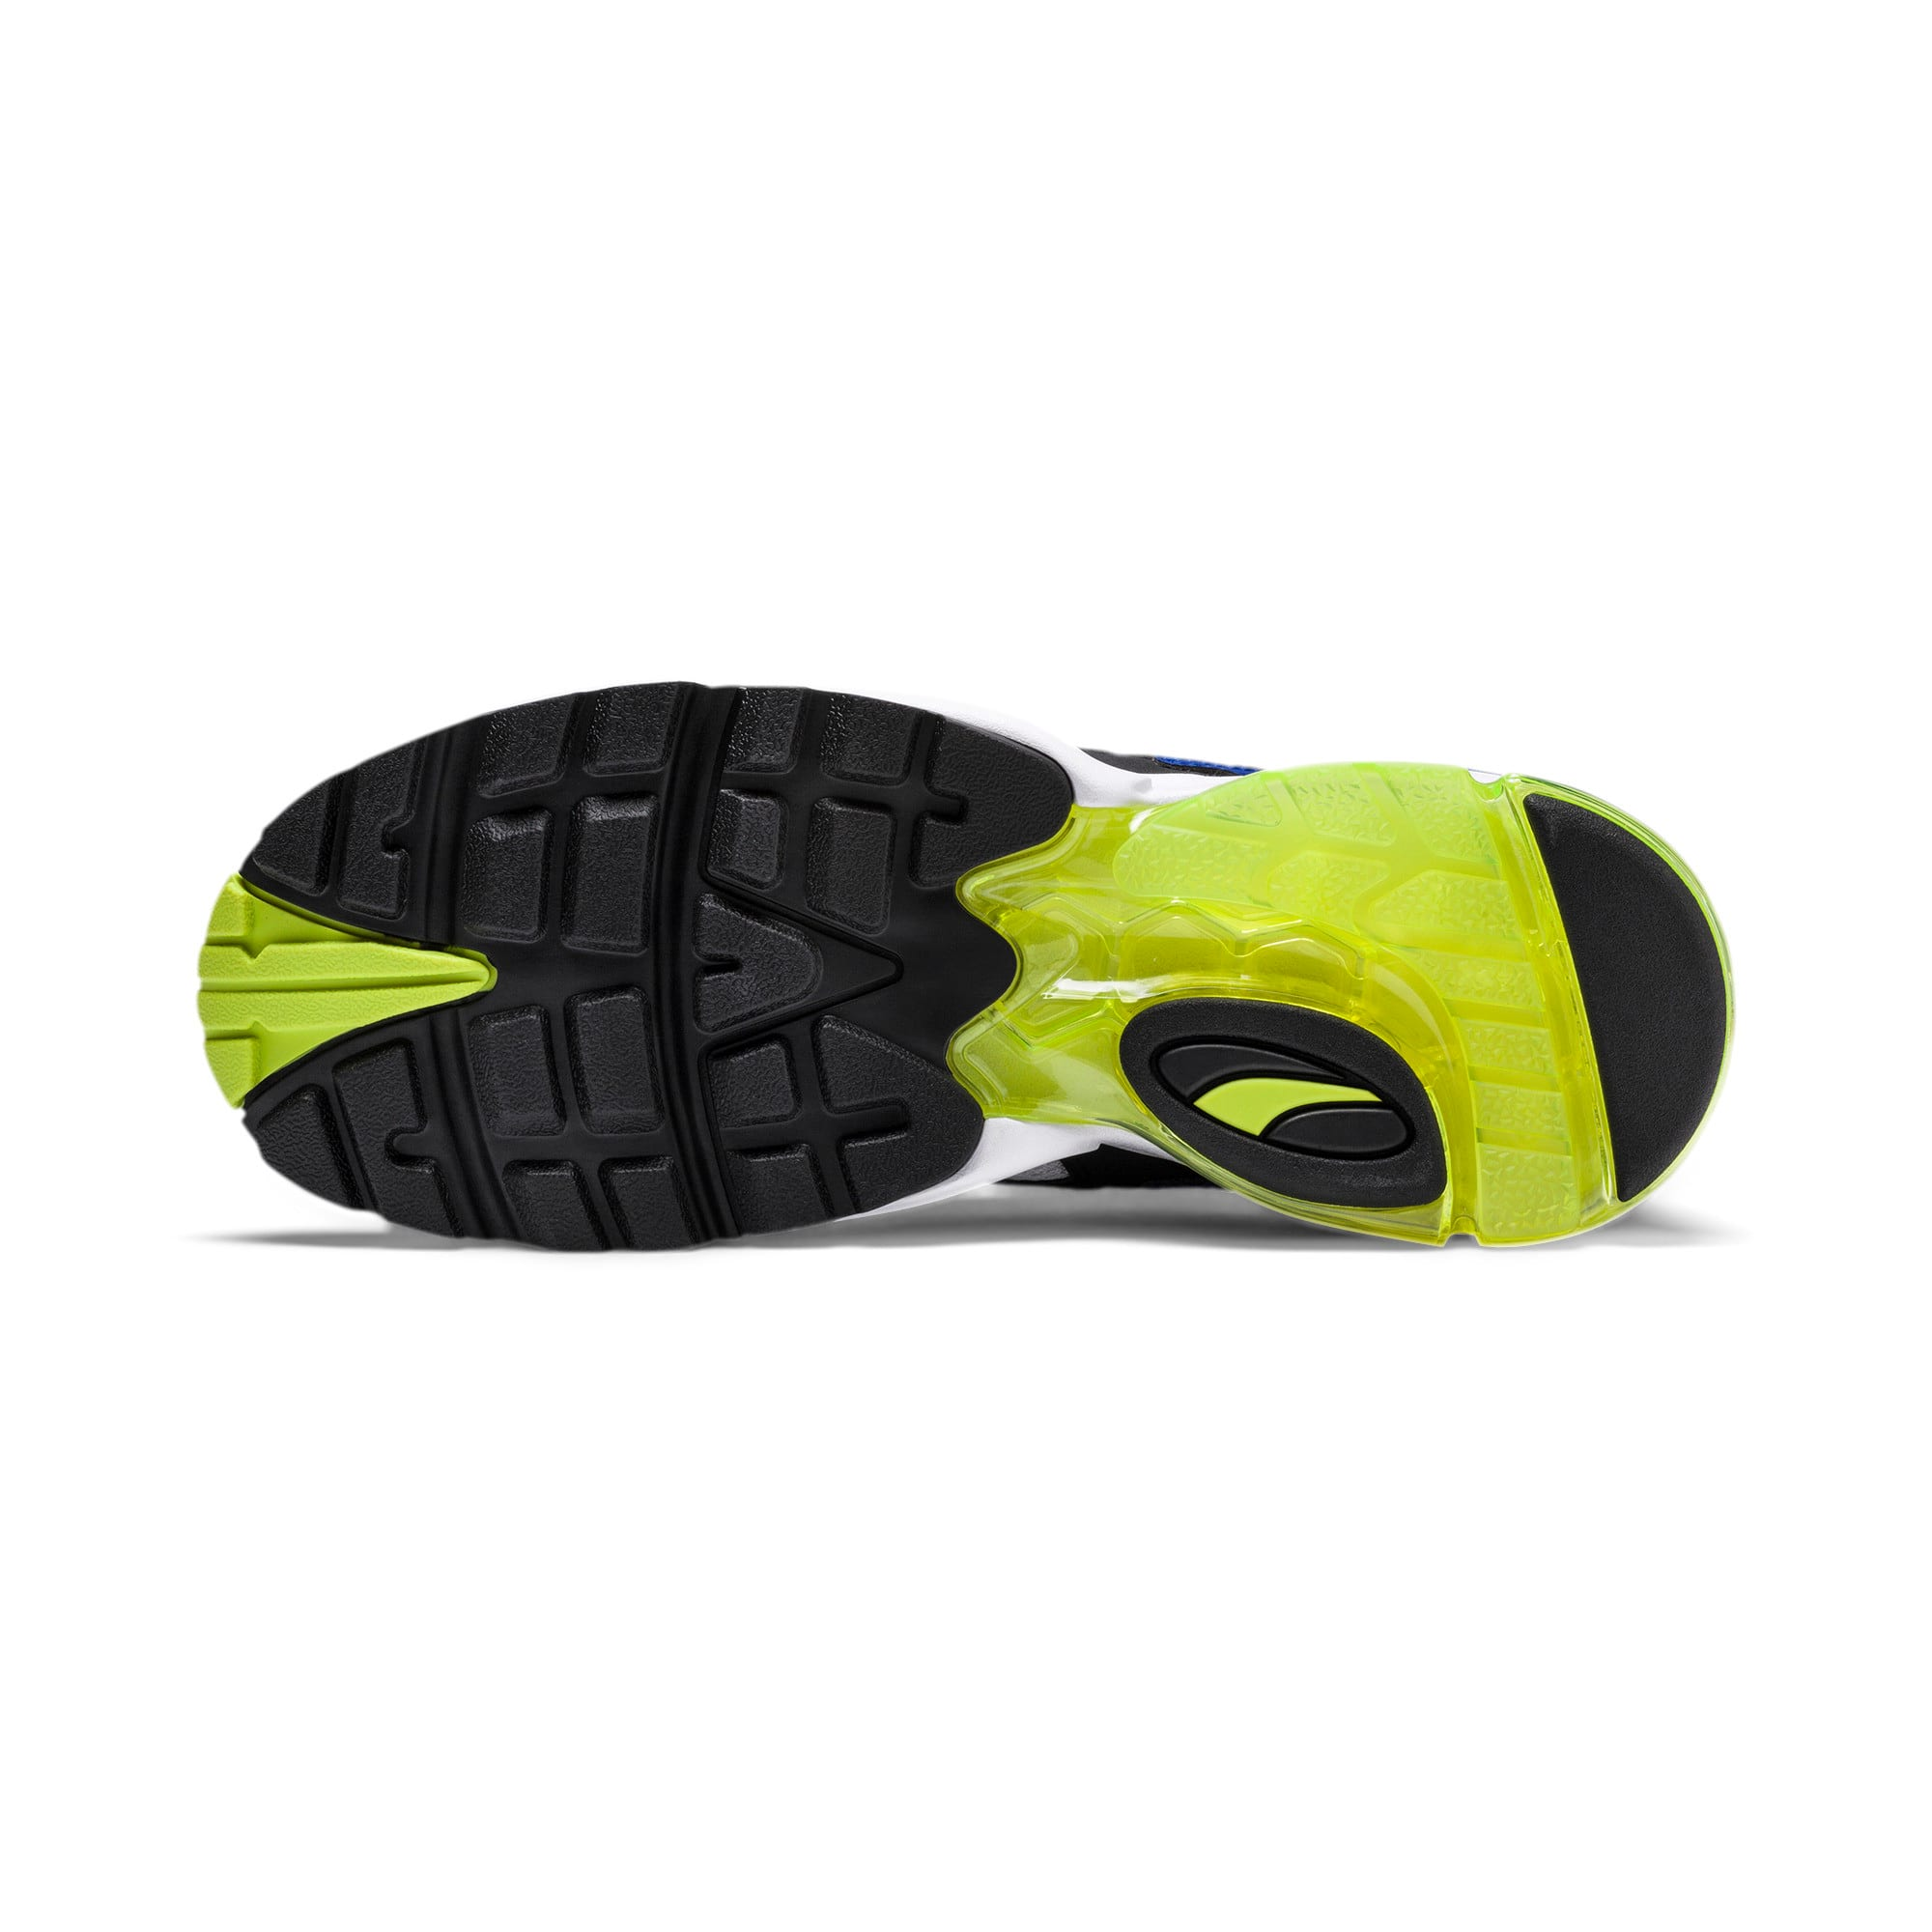 Thumbnail 6 of CELL Alien OG Trainers, Puma Black-Surf The Web, medium-IND